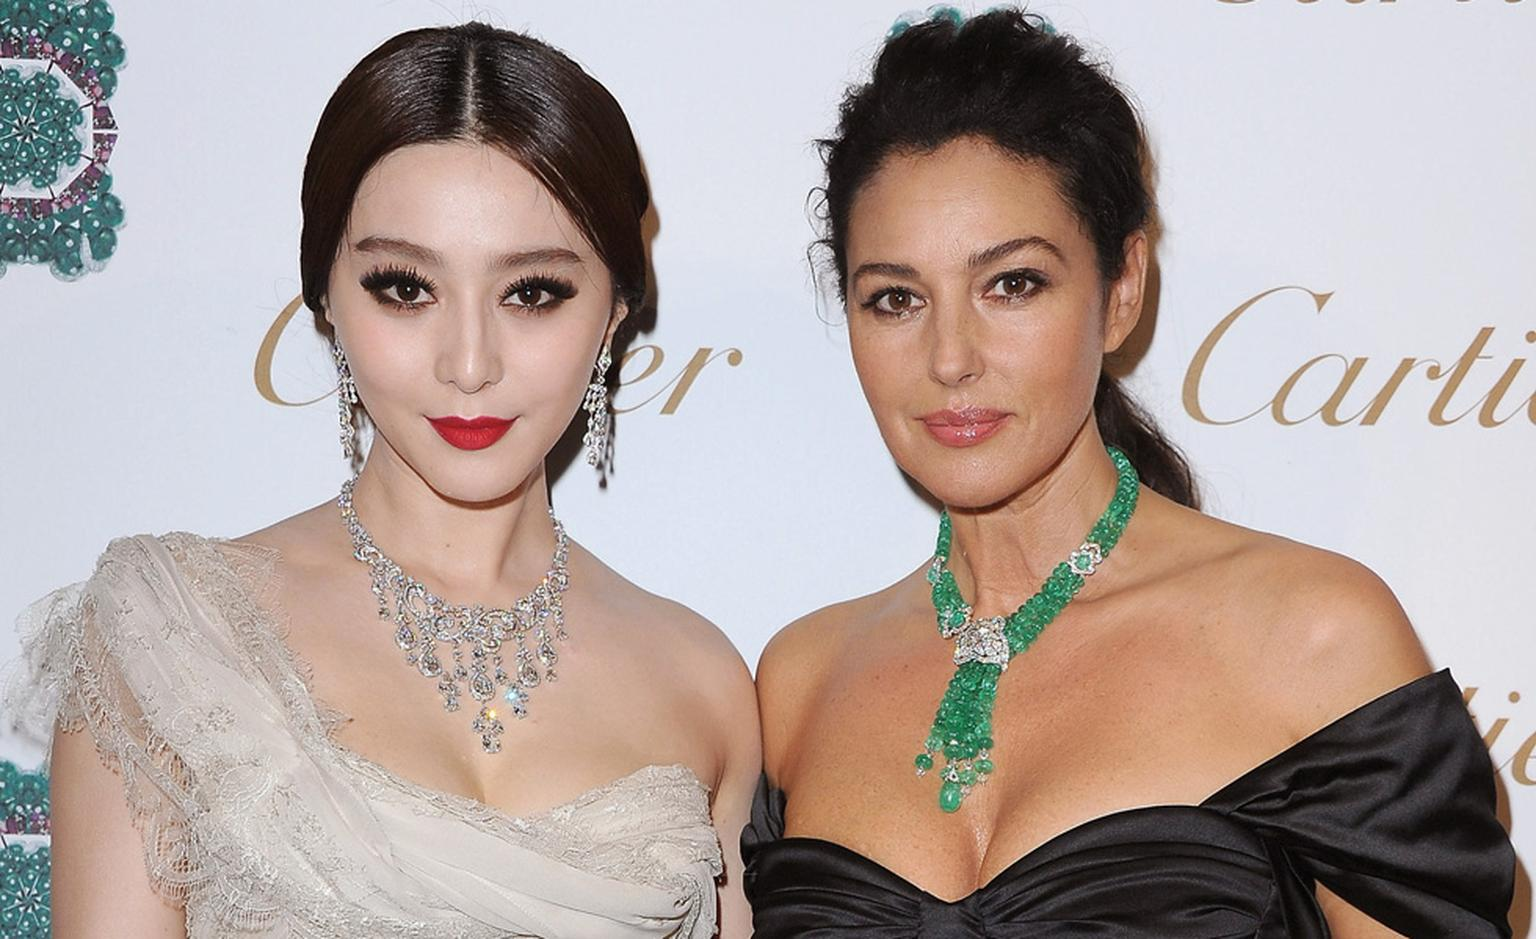 Fan Bingbing and Monica Belluci, a Cartier Ambassador, at the launch of  Sortilège de Cartier jewels in Rome.